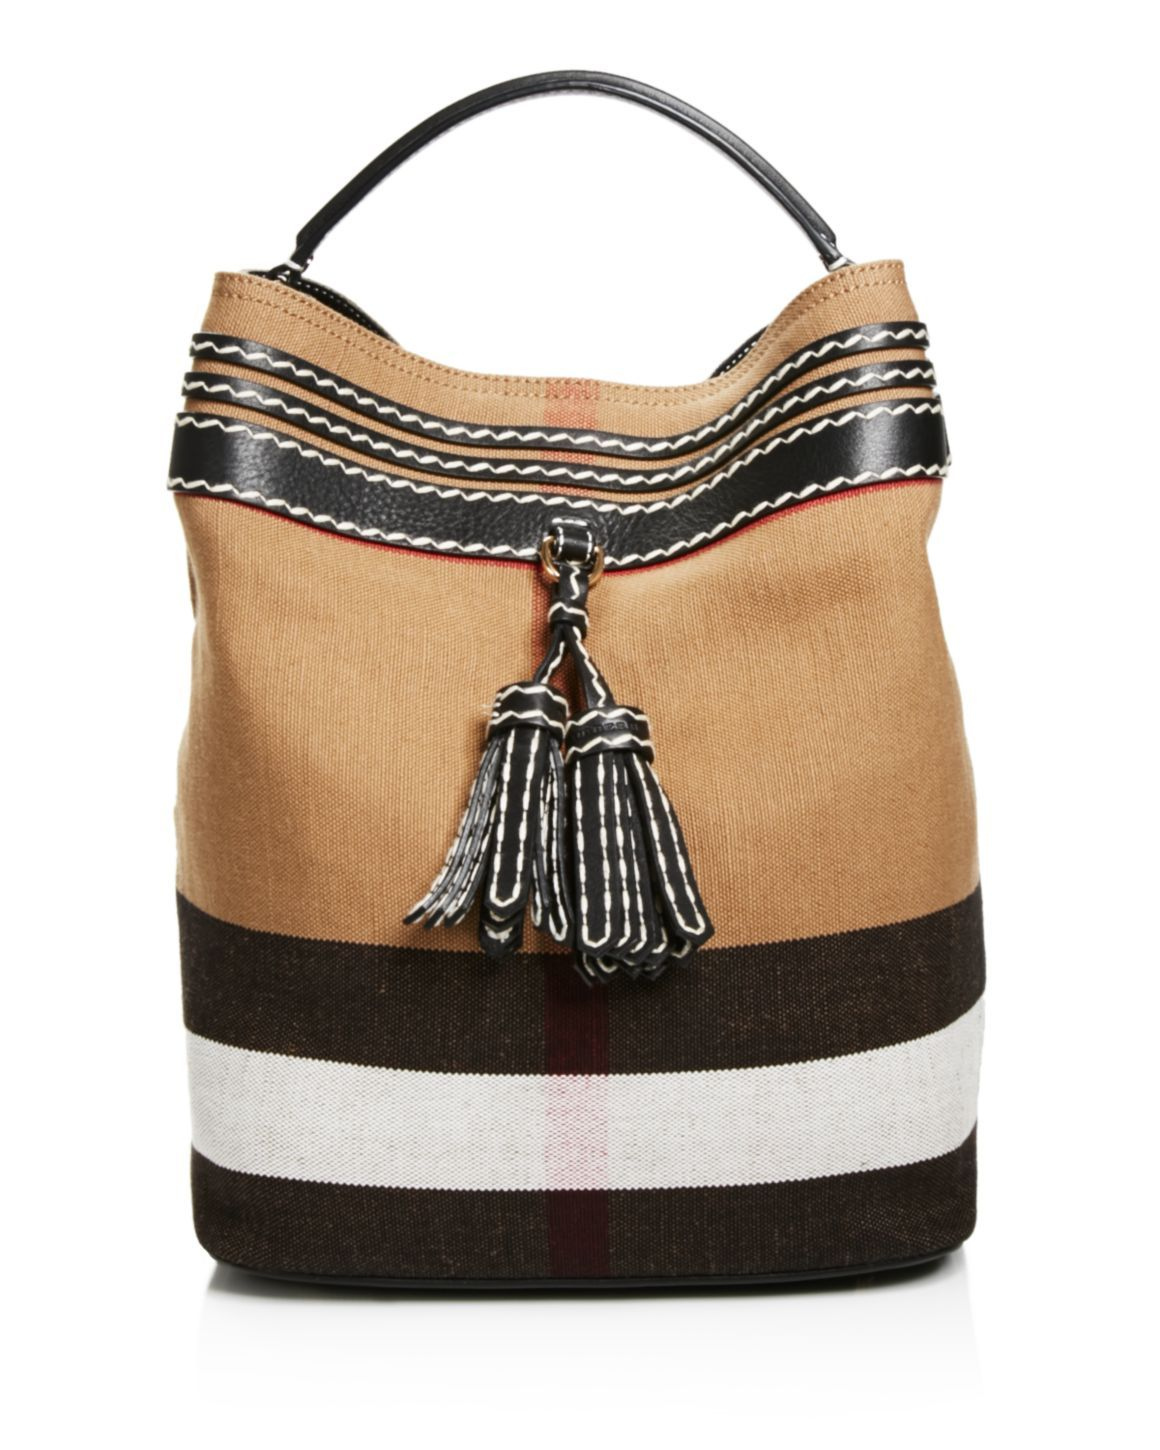 bba6d74bf864 Burberry Ashby Tassel Whipstitch Hobo - 100% Bloomingdale s Exclusive